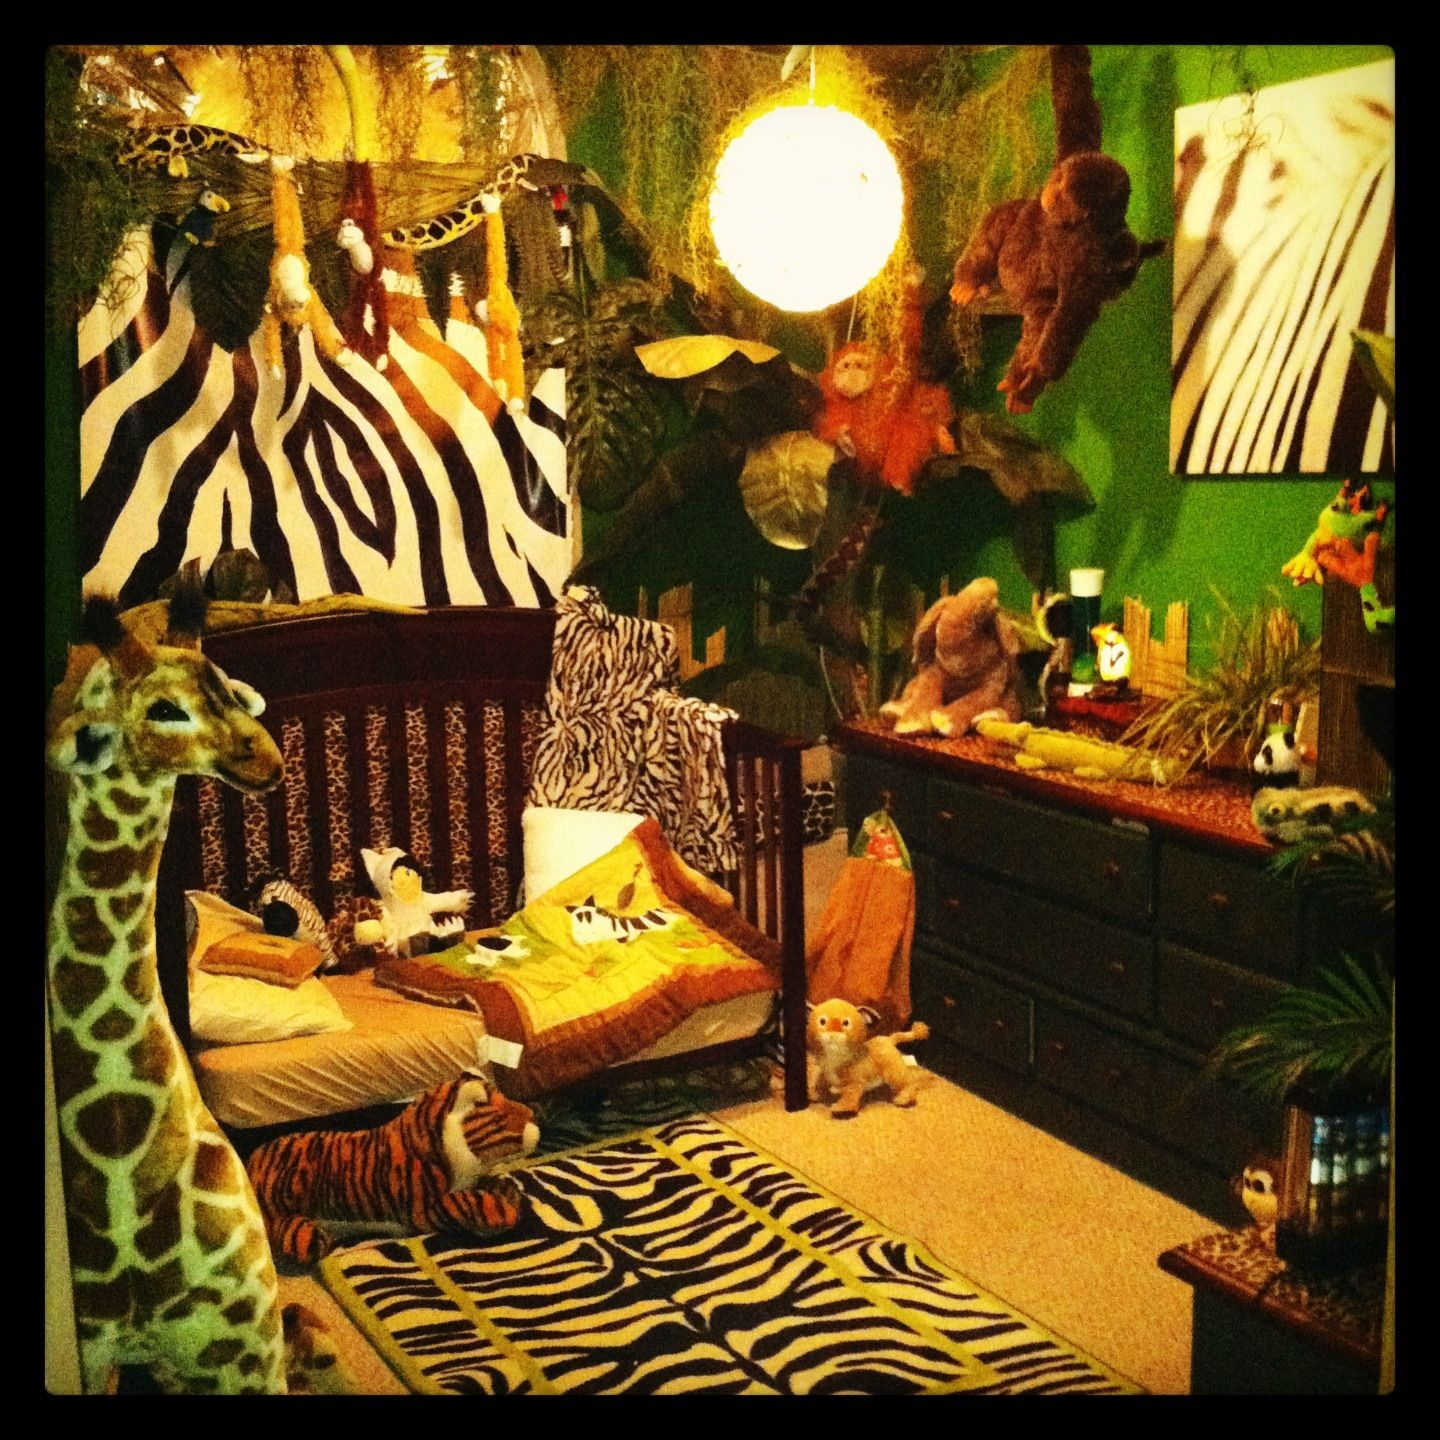 Jungle bedroom cj and milena 39 s bedroom of awesomeness for Jungle bedroom ideas